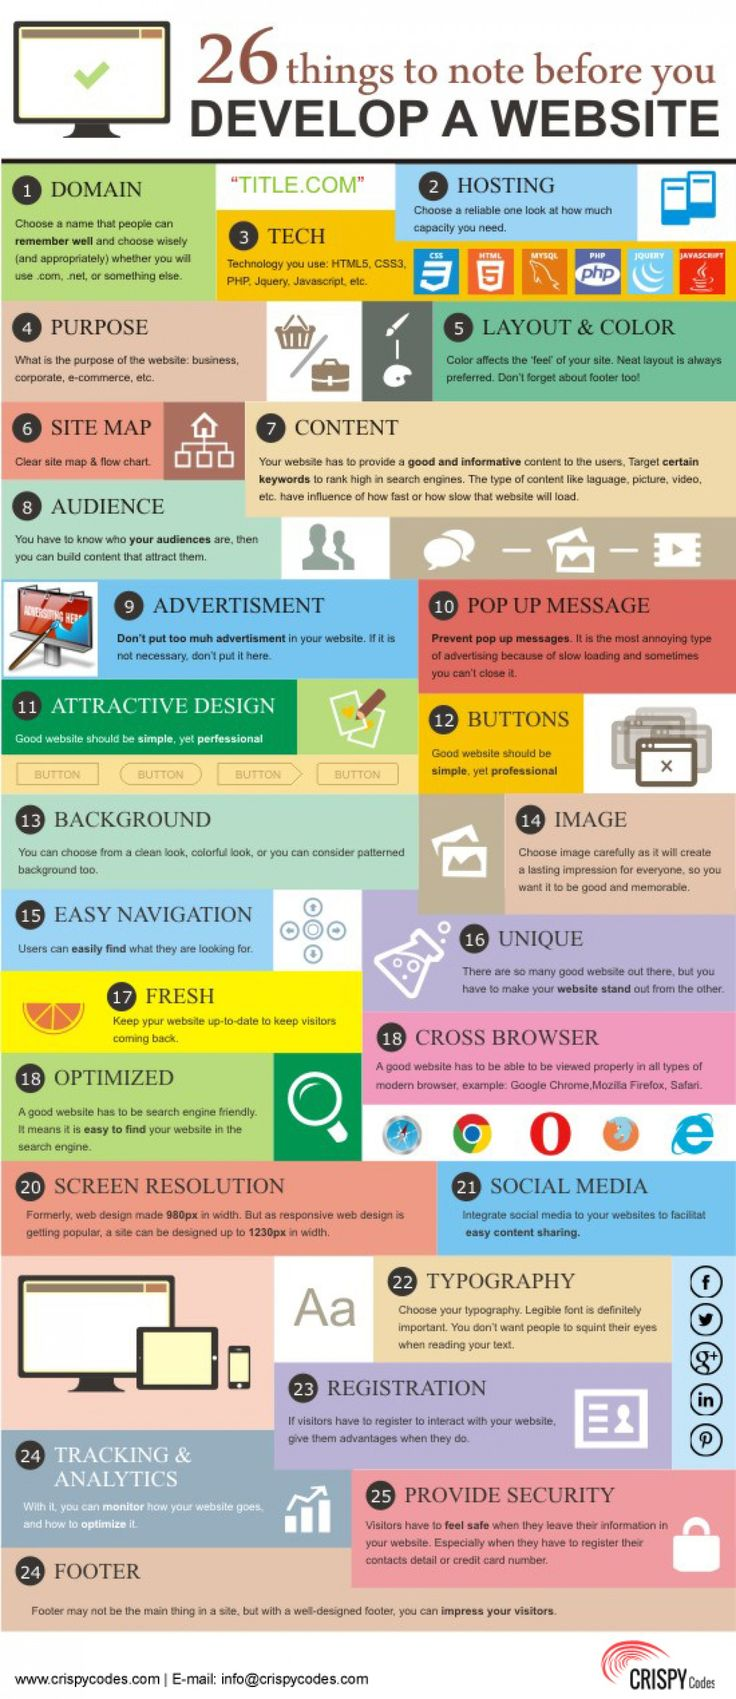 Business Infographic Outsourcing Programming Services Is A Leading India Based Web Design And Develop Infographicnow Com Your Number One Source For Daily Infographics Visual Creativity